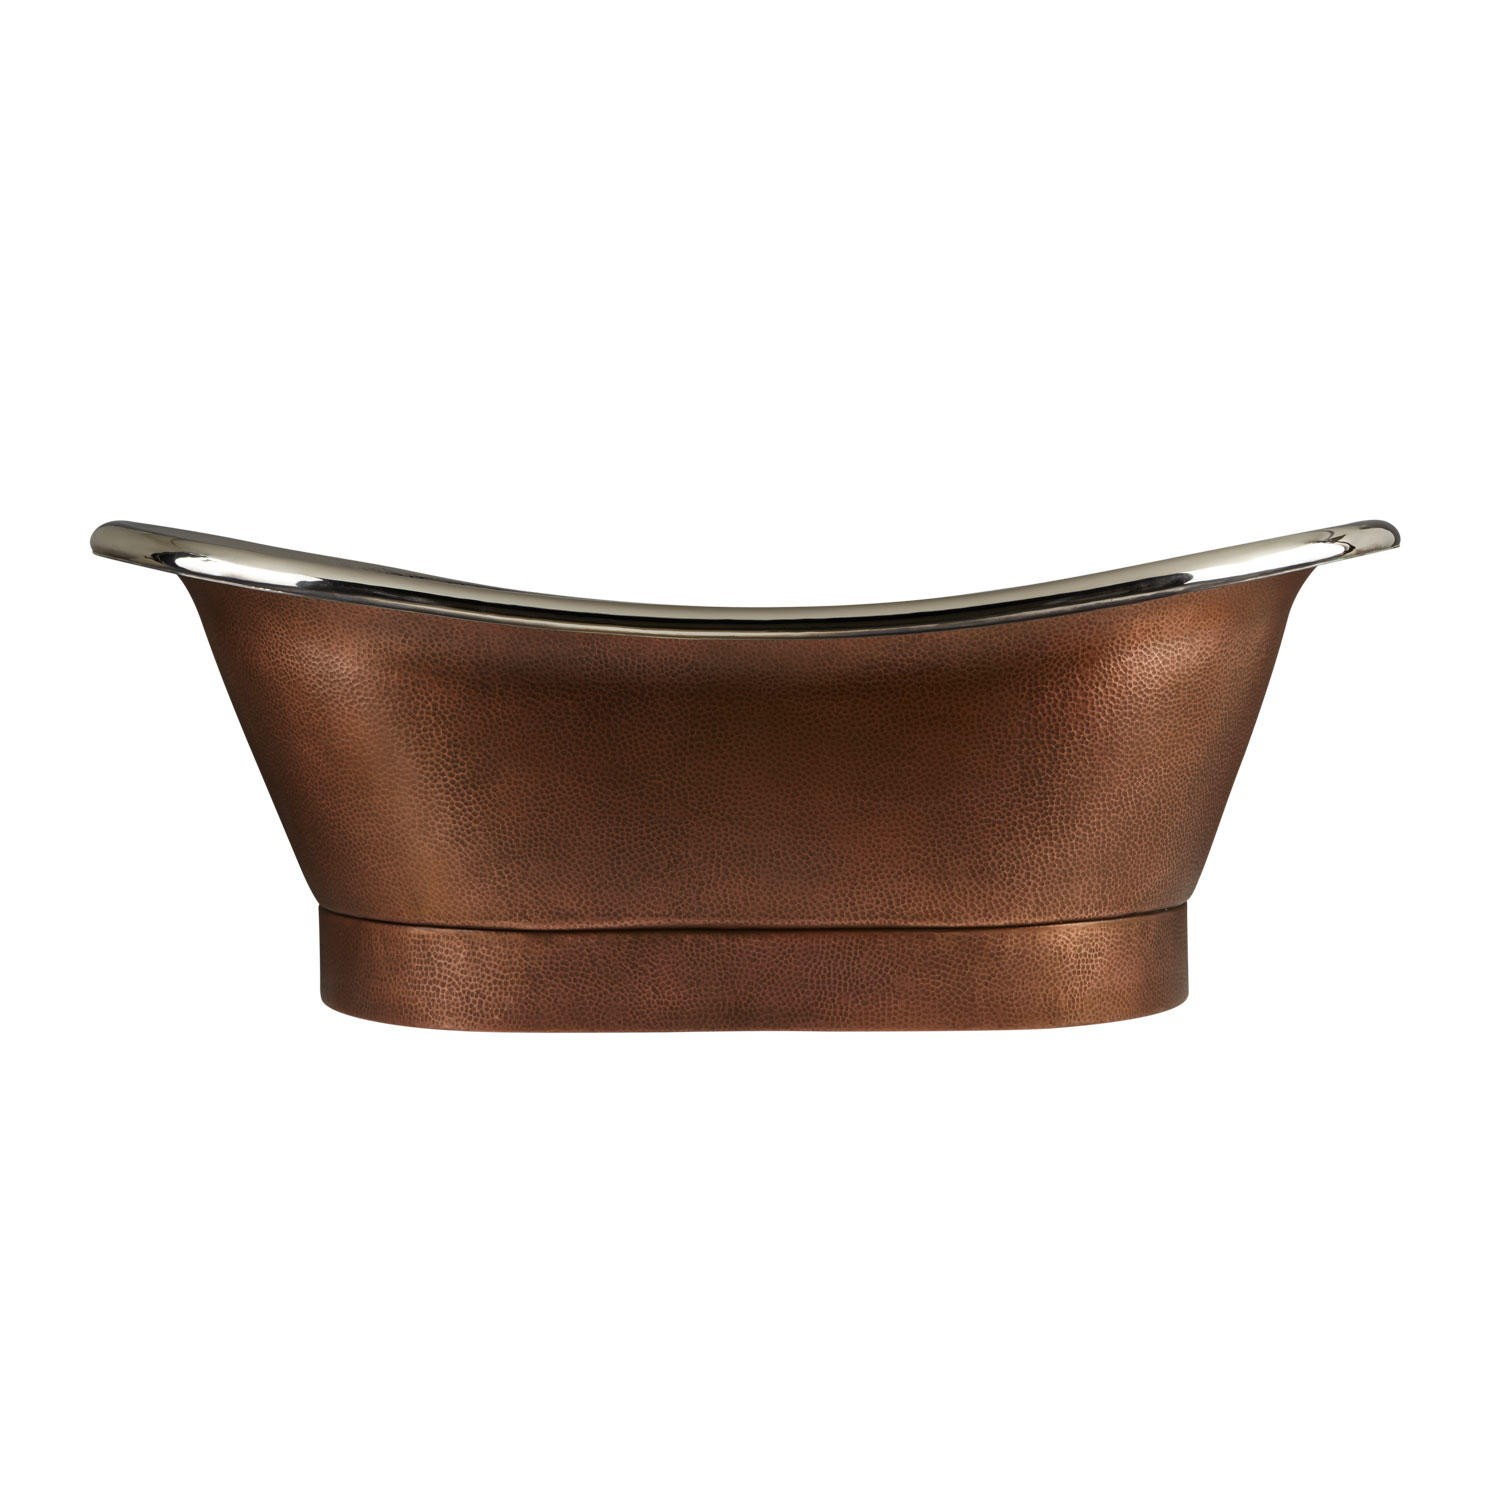 Copper Tub - Coppersmith Creations